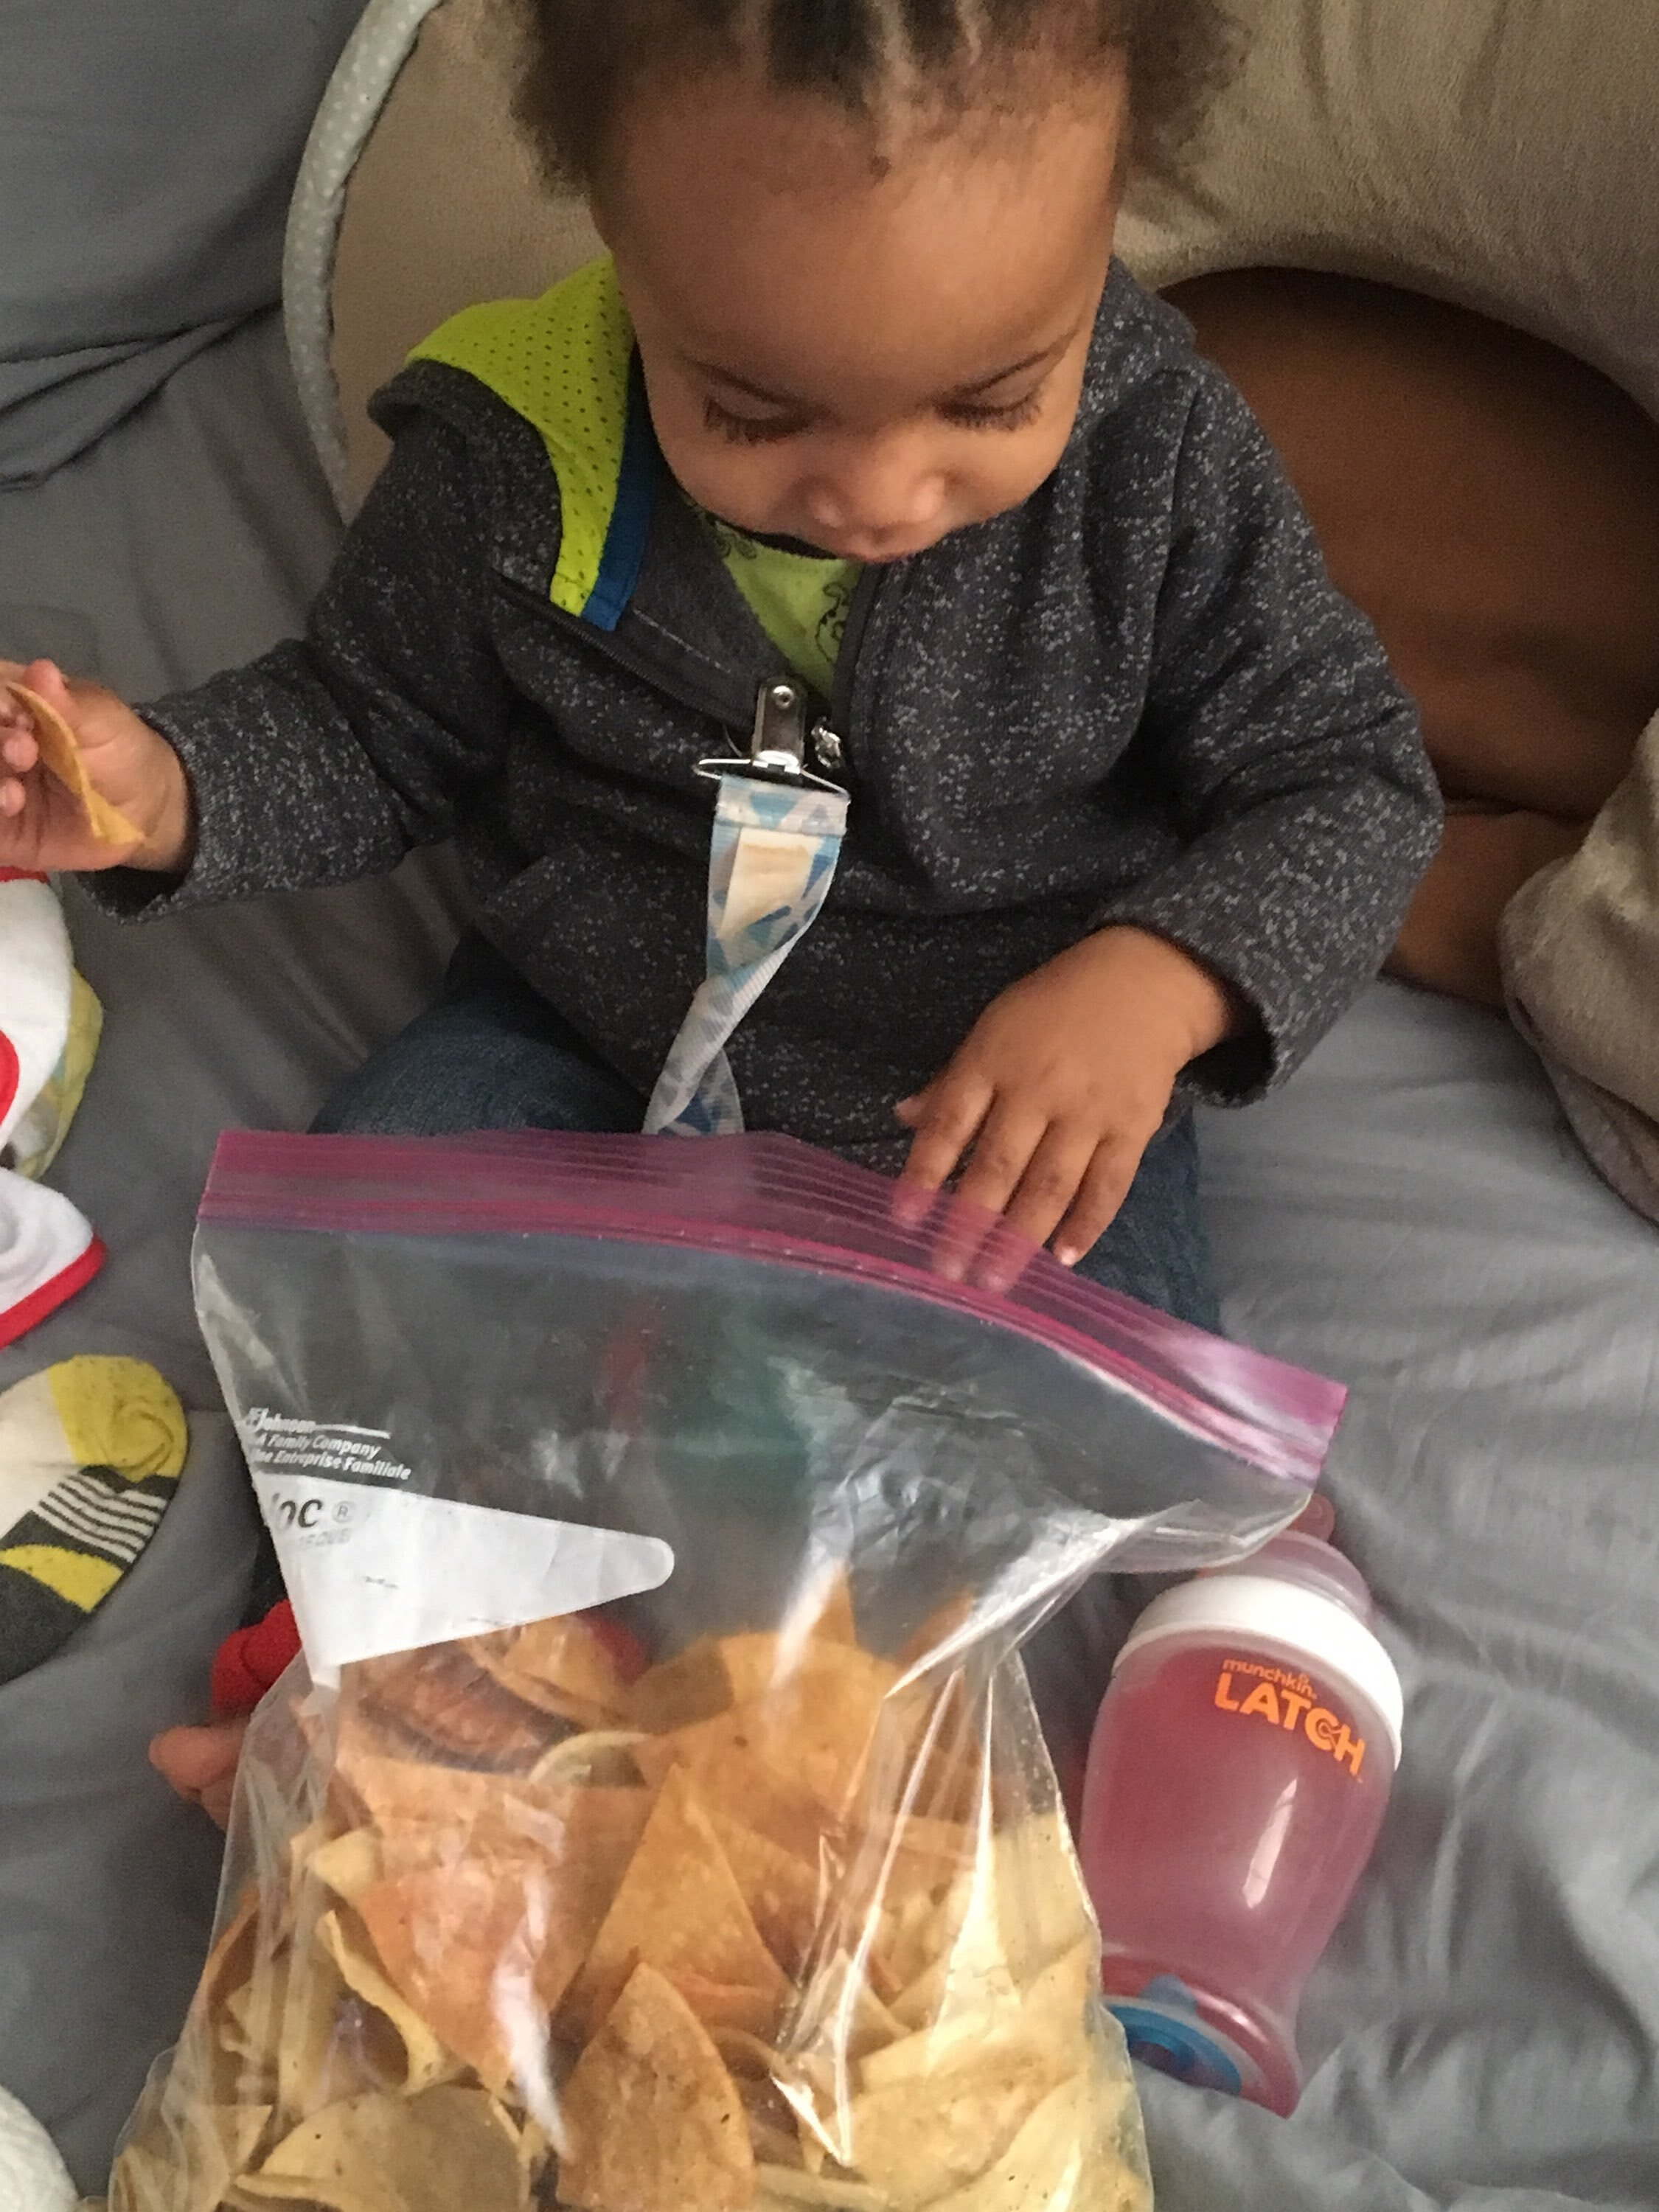 Thor loves Granny's aka the chip chick's, Chips so much he forgets about his sippy cup!